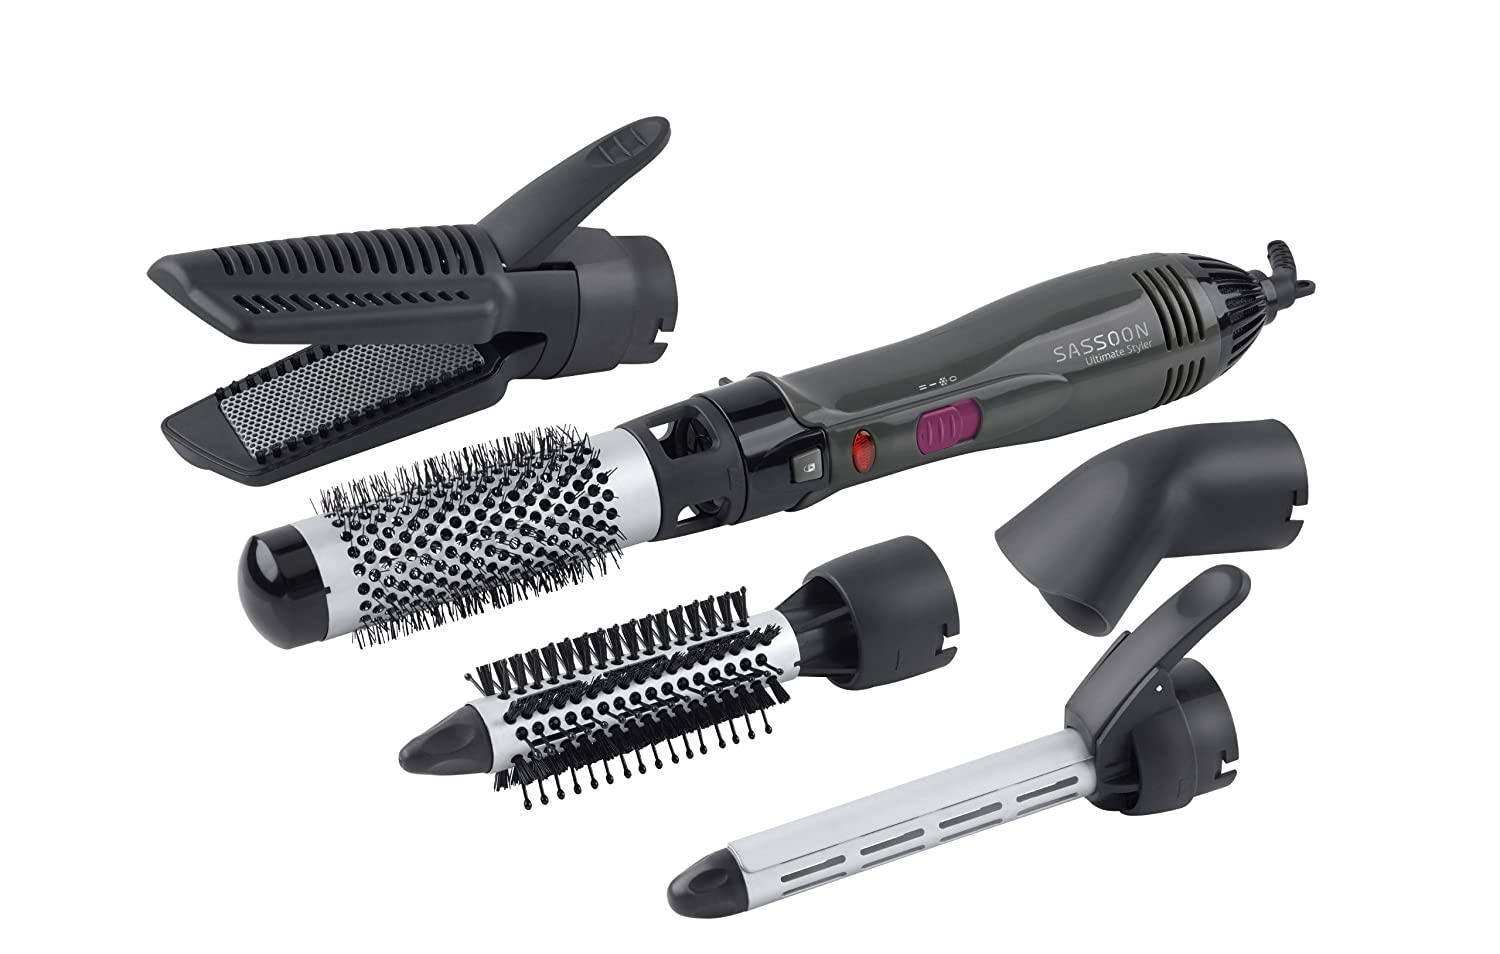 Sassoon Ultimate Styler, 1200 W - Black Helen of Troy LTD VSHA6474UK